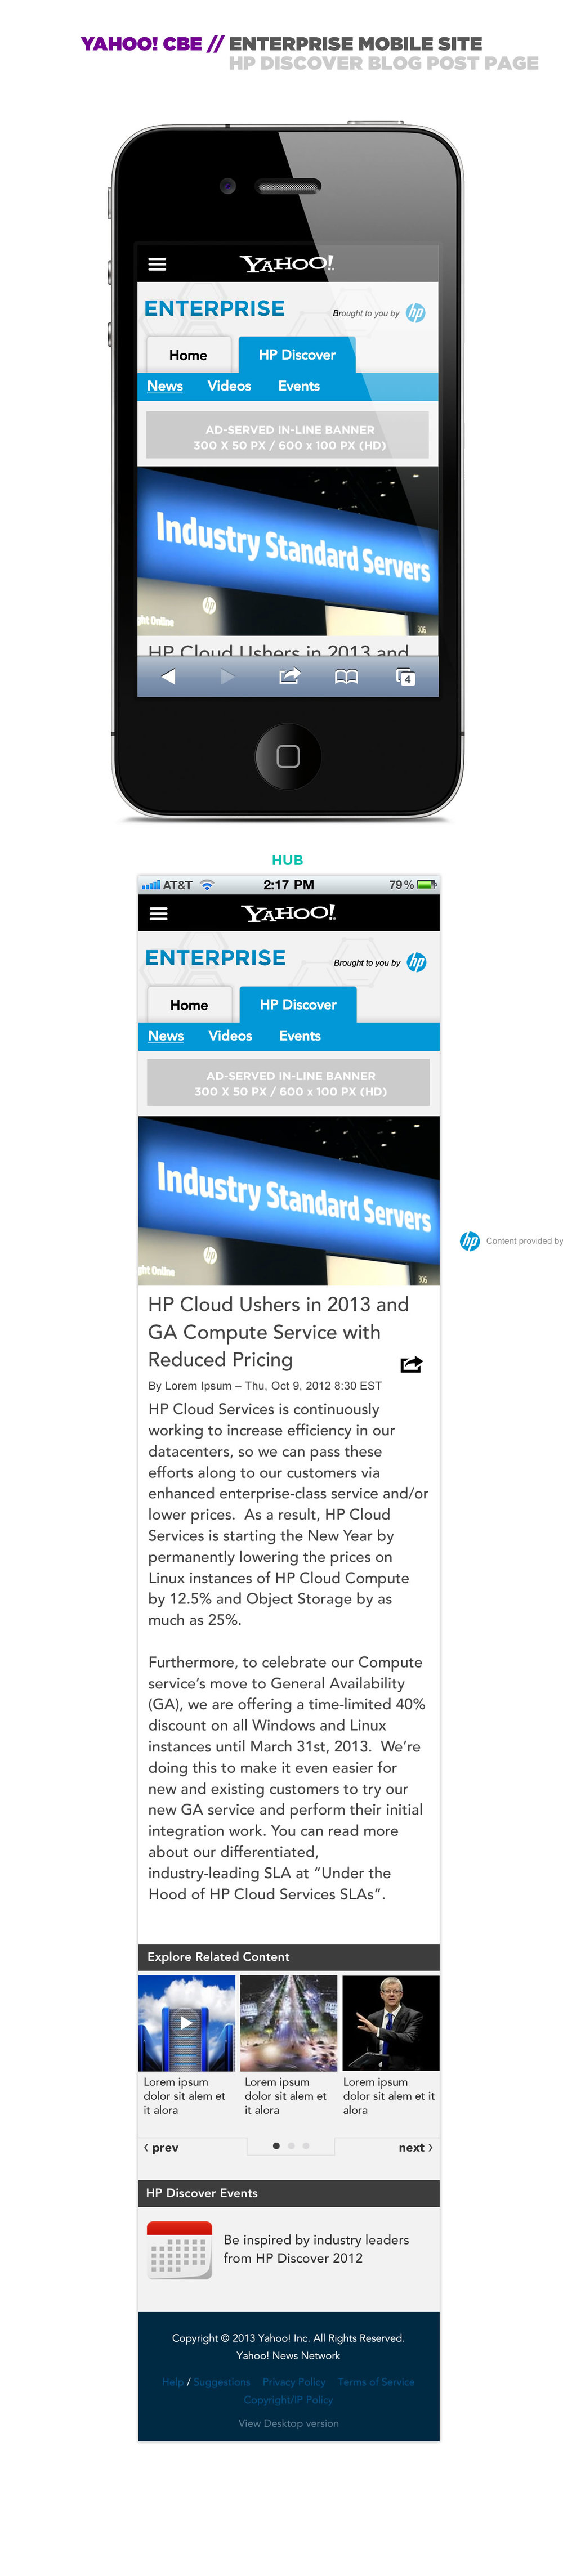 Enterprise_Mobile_hpdiscover-blogpost-sponsored.jpg